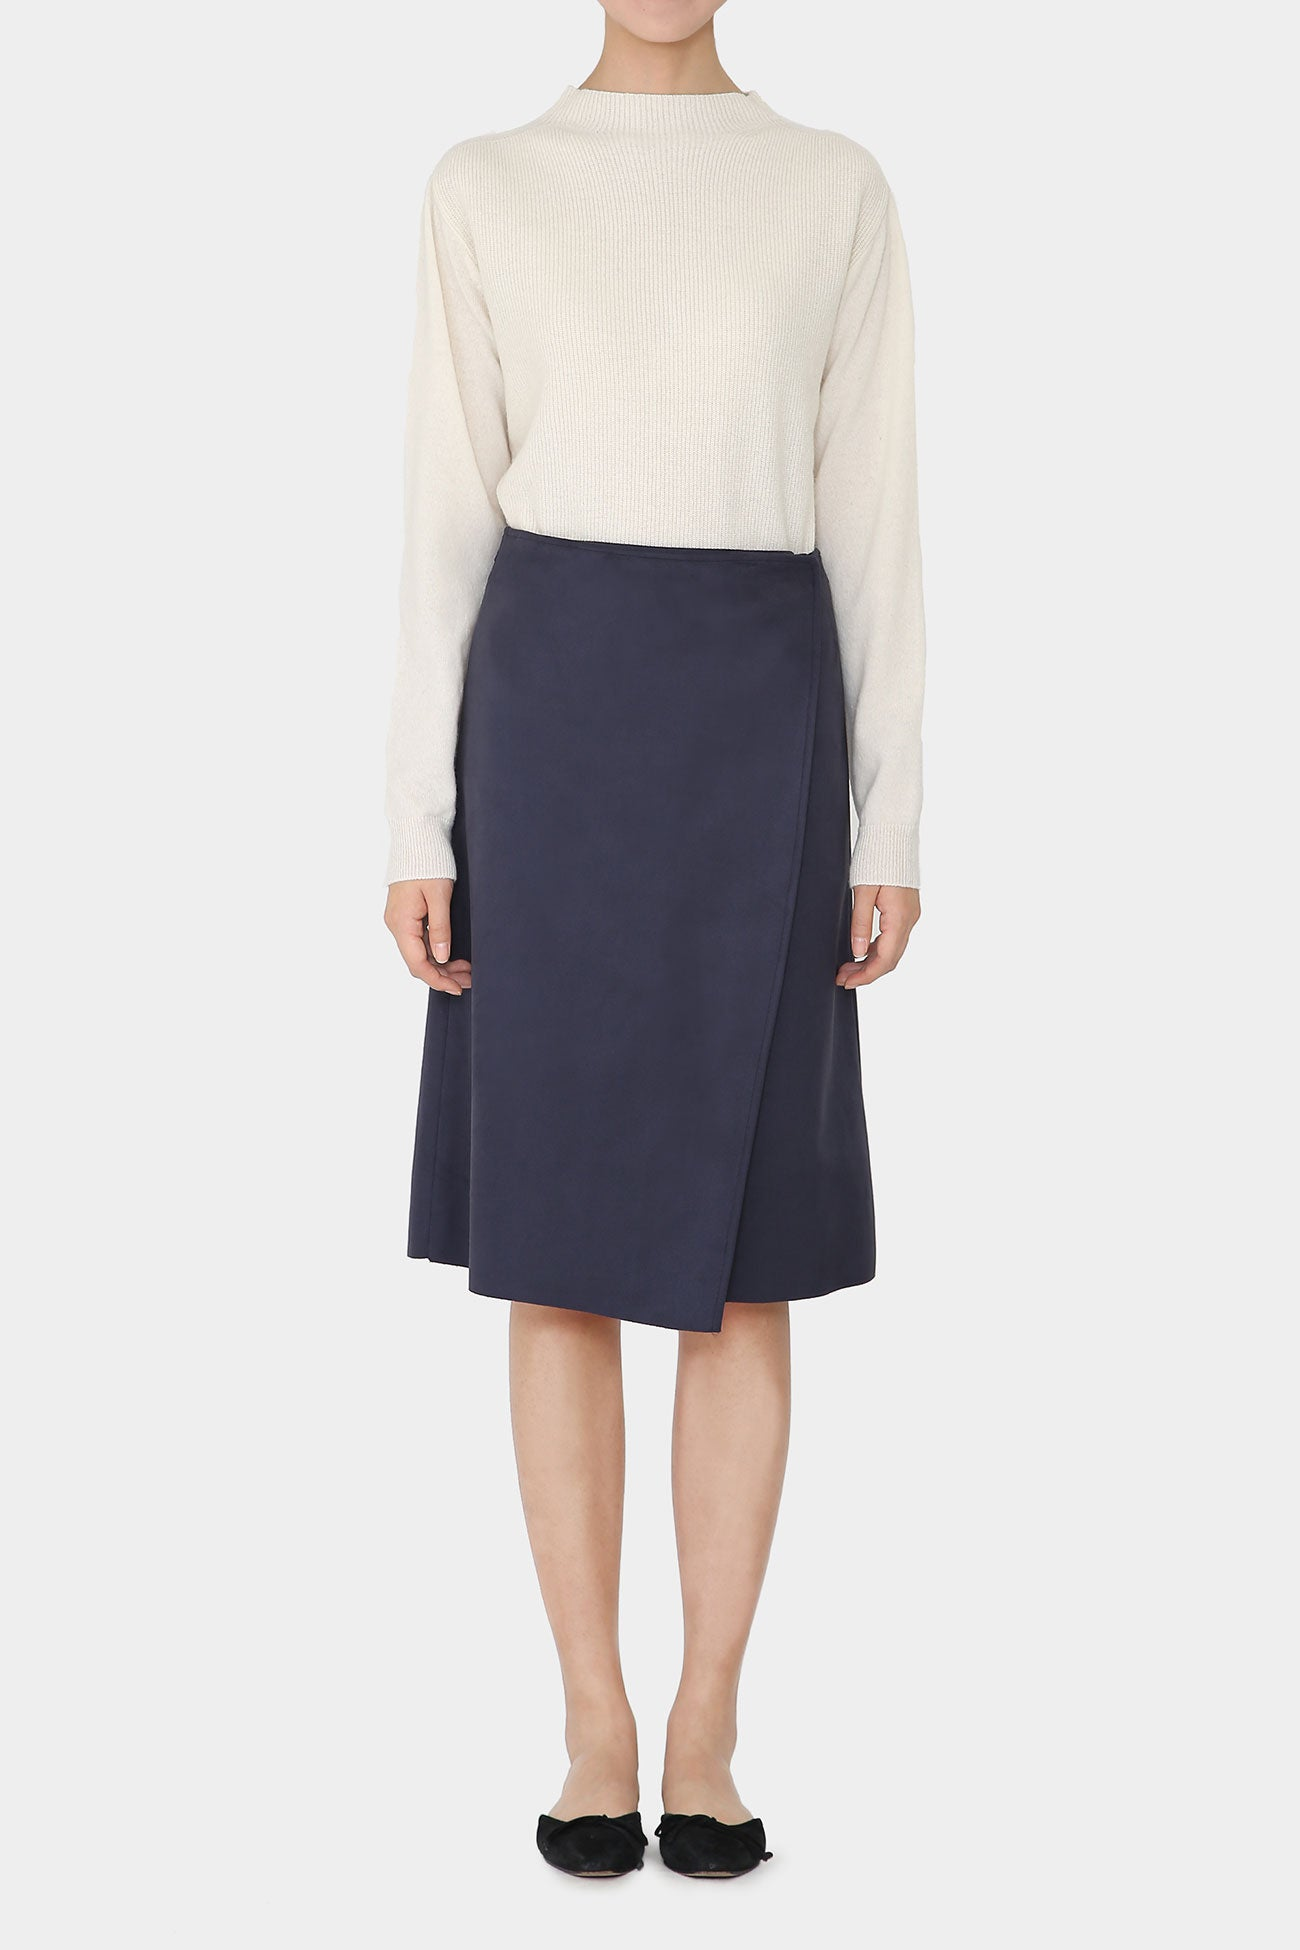 NAVY CRUZ SUEDE WRAP SKIRT